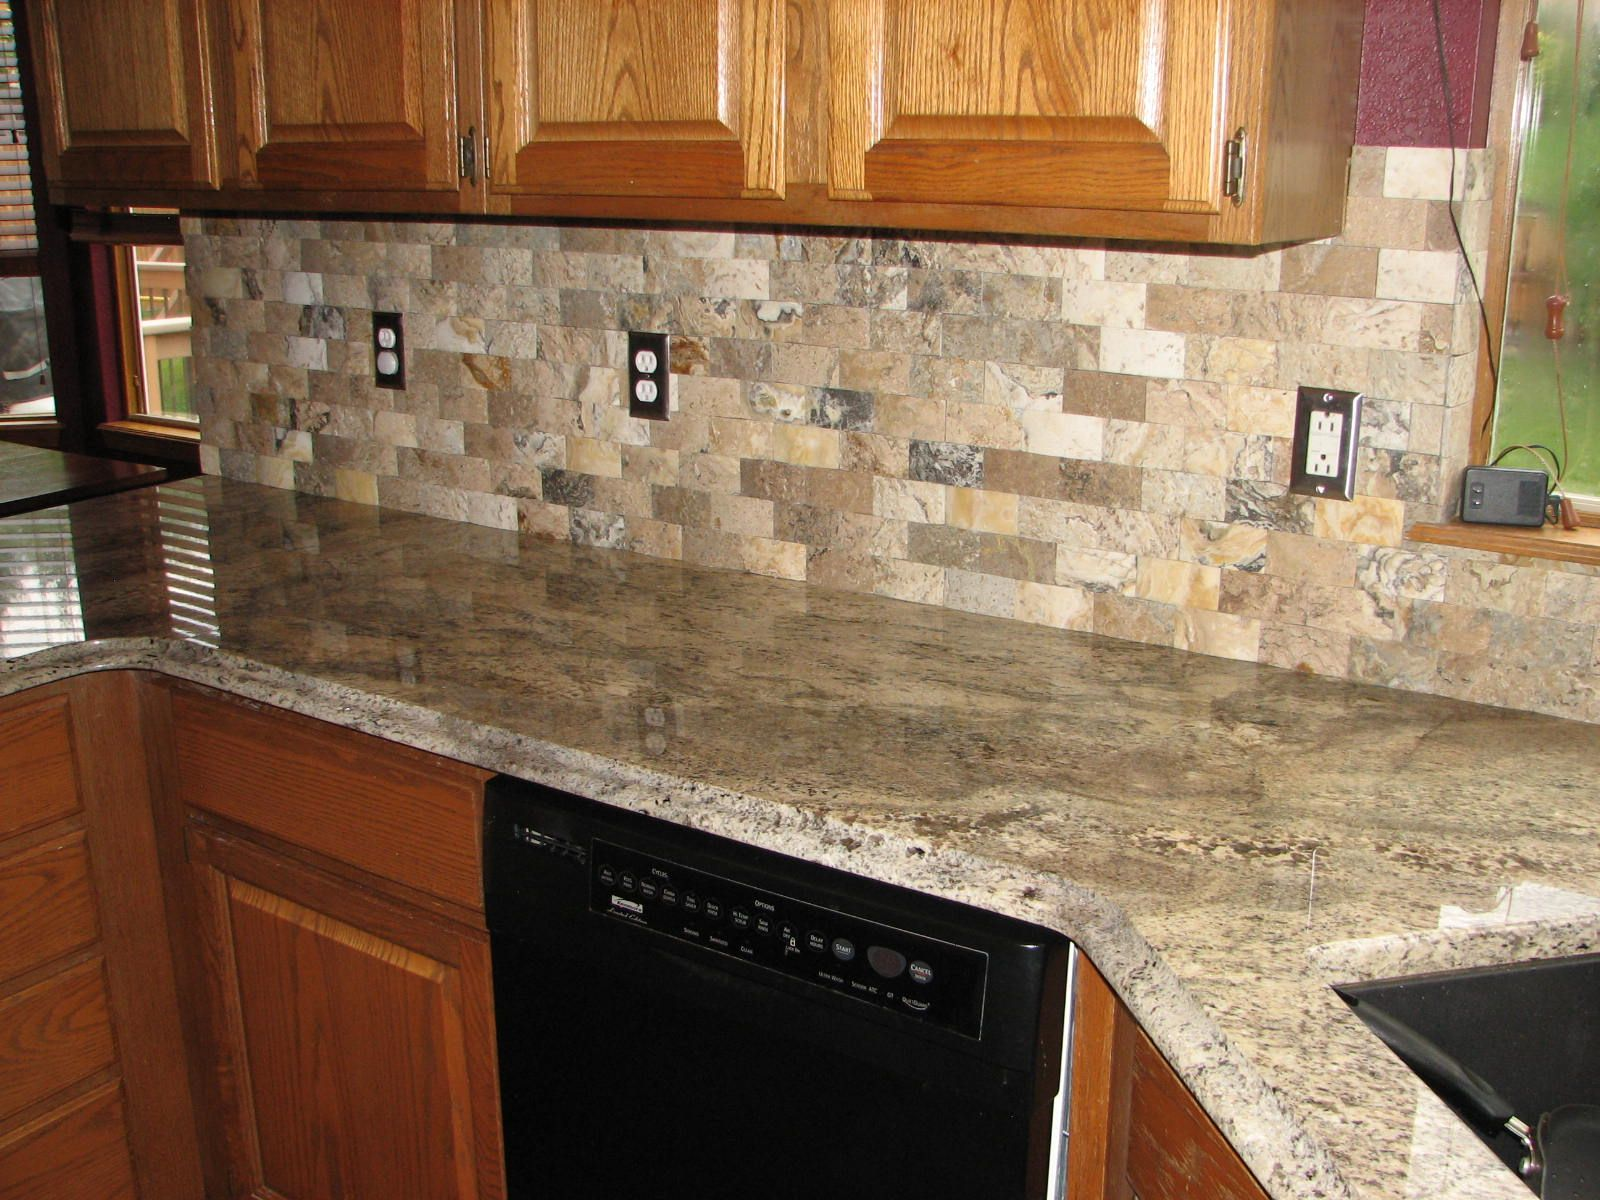 Lighthouse Stone Kitchen Backsplash In Golden Antico Curve